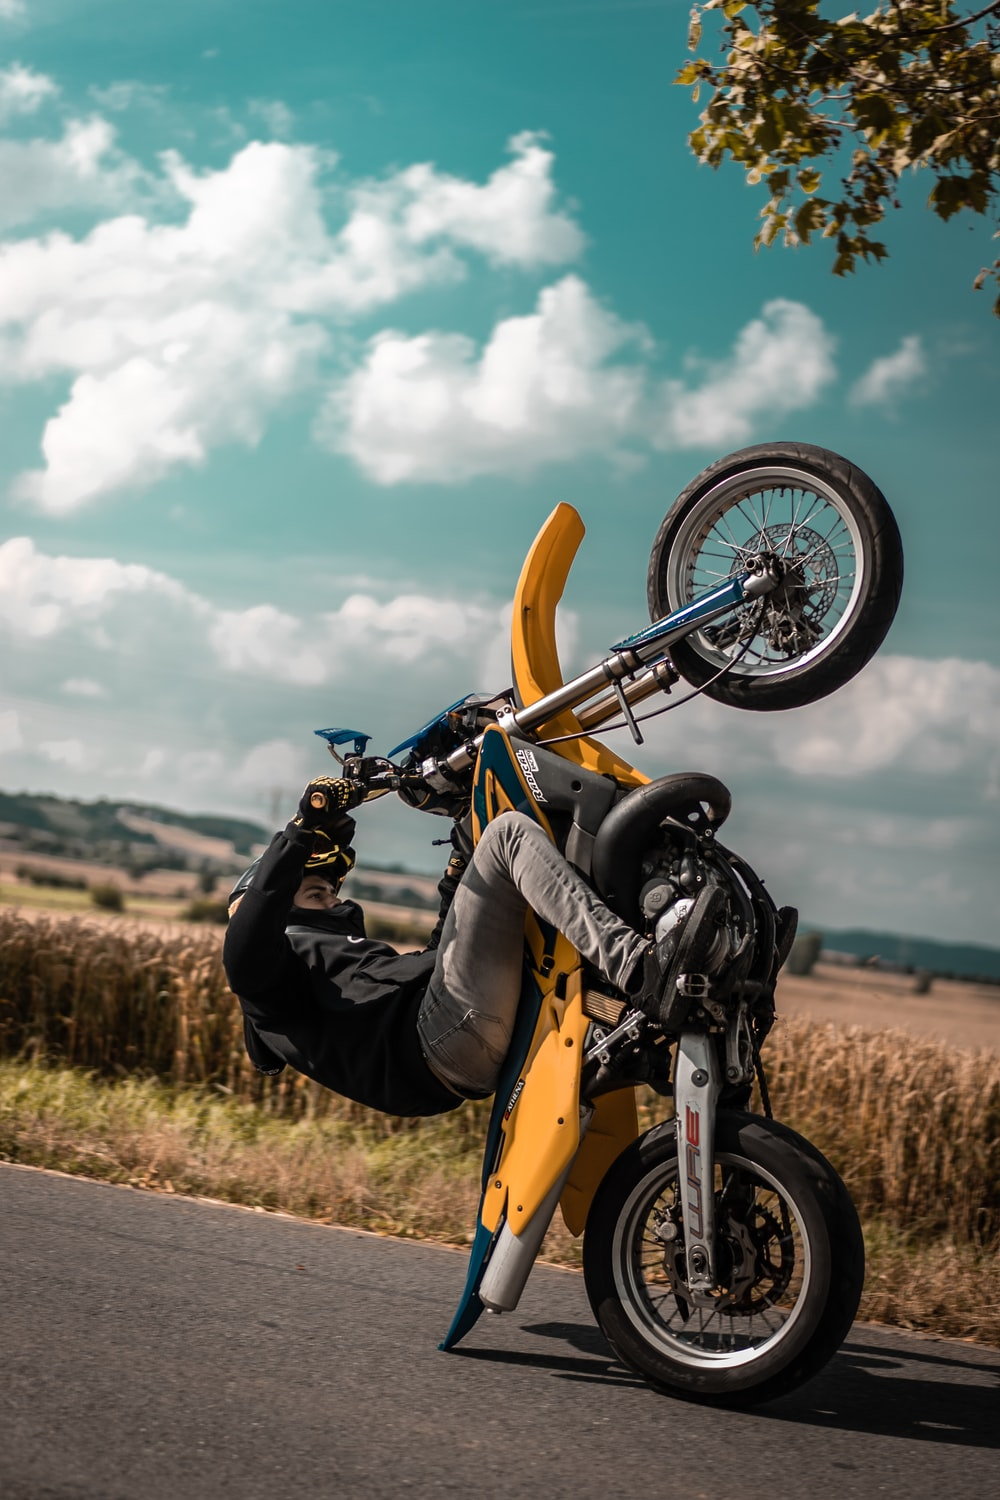 man riding yellow motocross dirt bike on road near grass during cloudy day